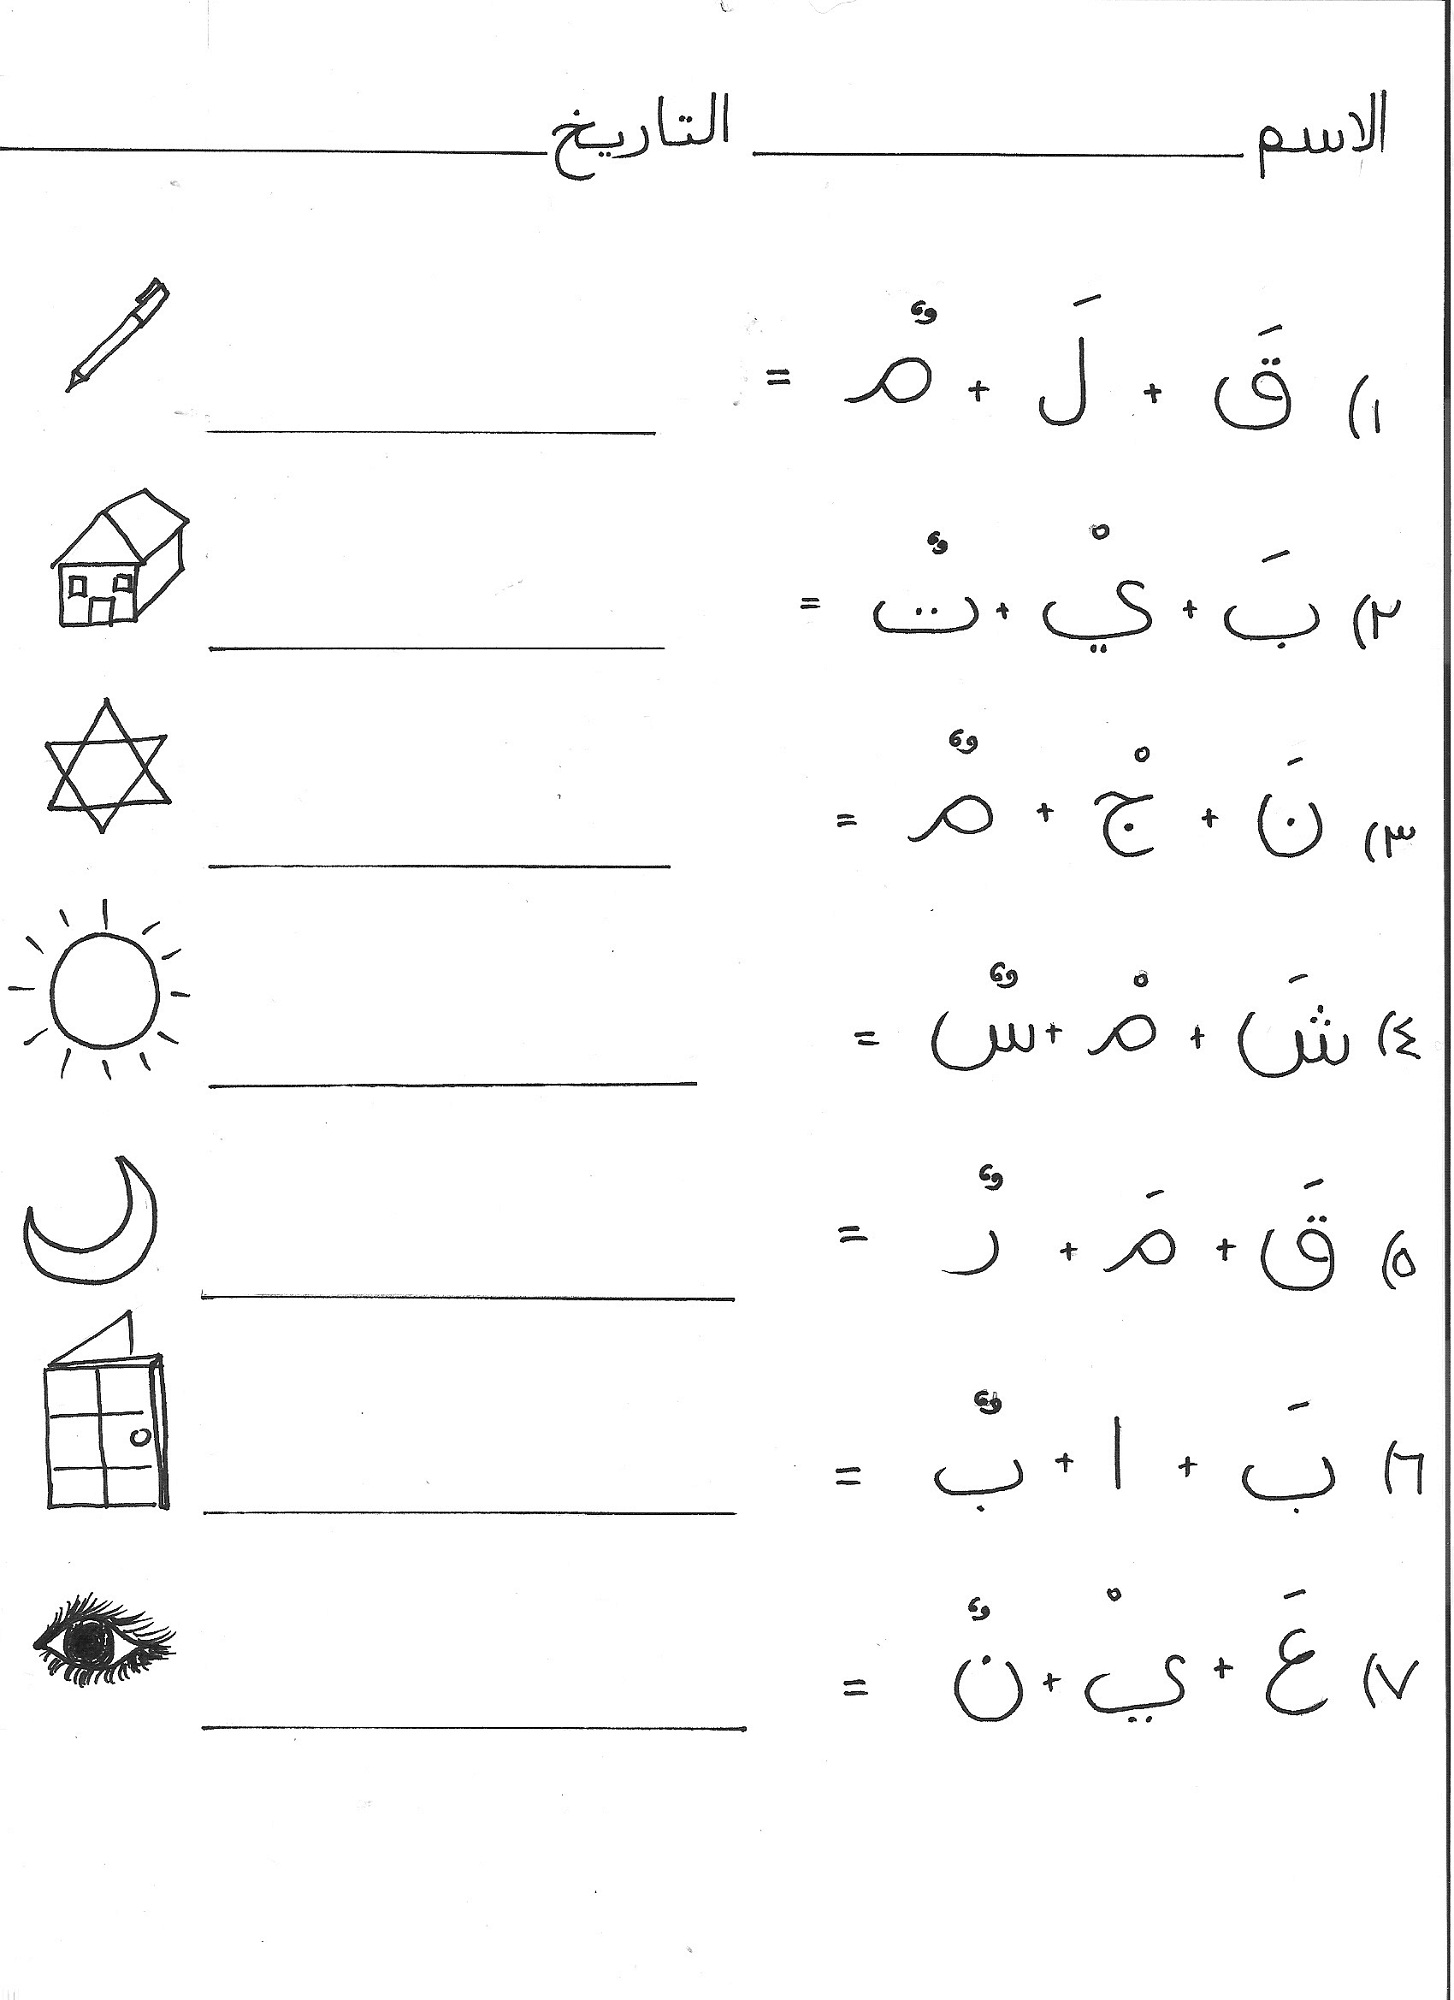 picture relating to Arabic Alphabet Printable referred to as Arabic Alphabet Worksheets Game Shelter